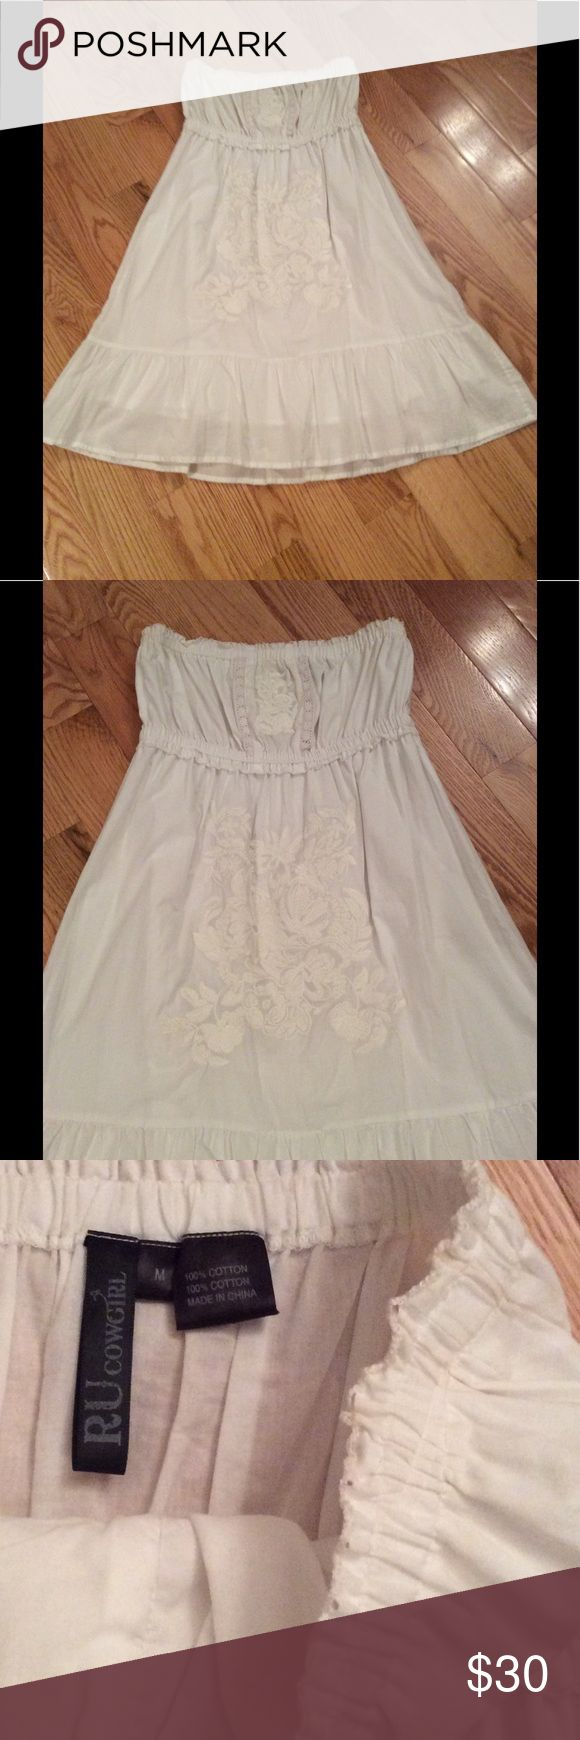 Strapless white lace sundress Strapless white lace sundress. This sundress is adorable. I wish it still fit me. It has elastic at the top with lace detail on front. It is NOT see through. I bought this dress in Nashville TN at a western store and wore it once with cute Brown western boots. This is a short dress. See measurements. It says size med but fits like S/XS make me an offer' Dresses Strapless